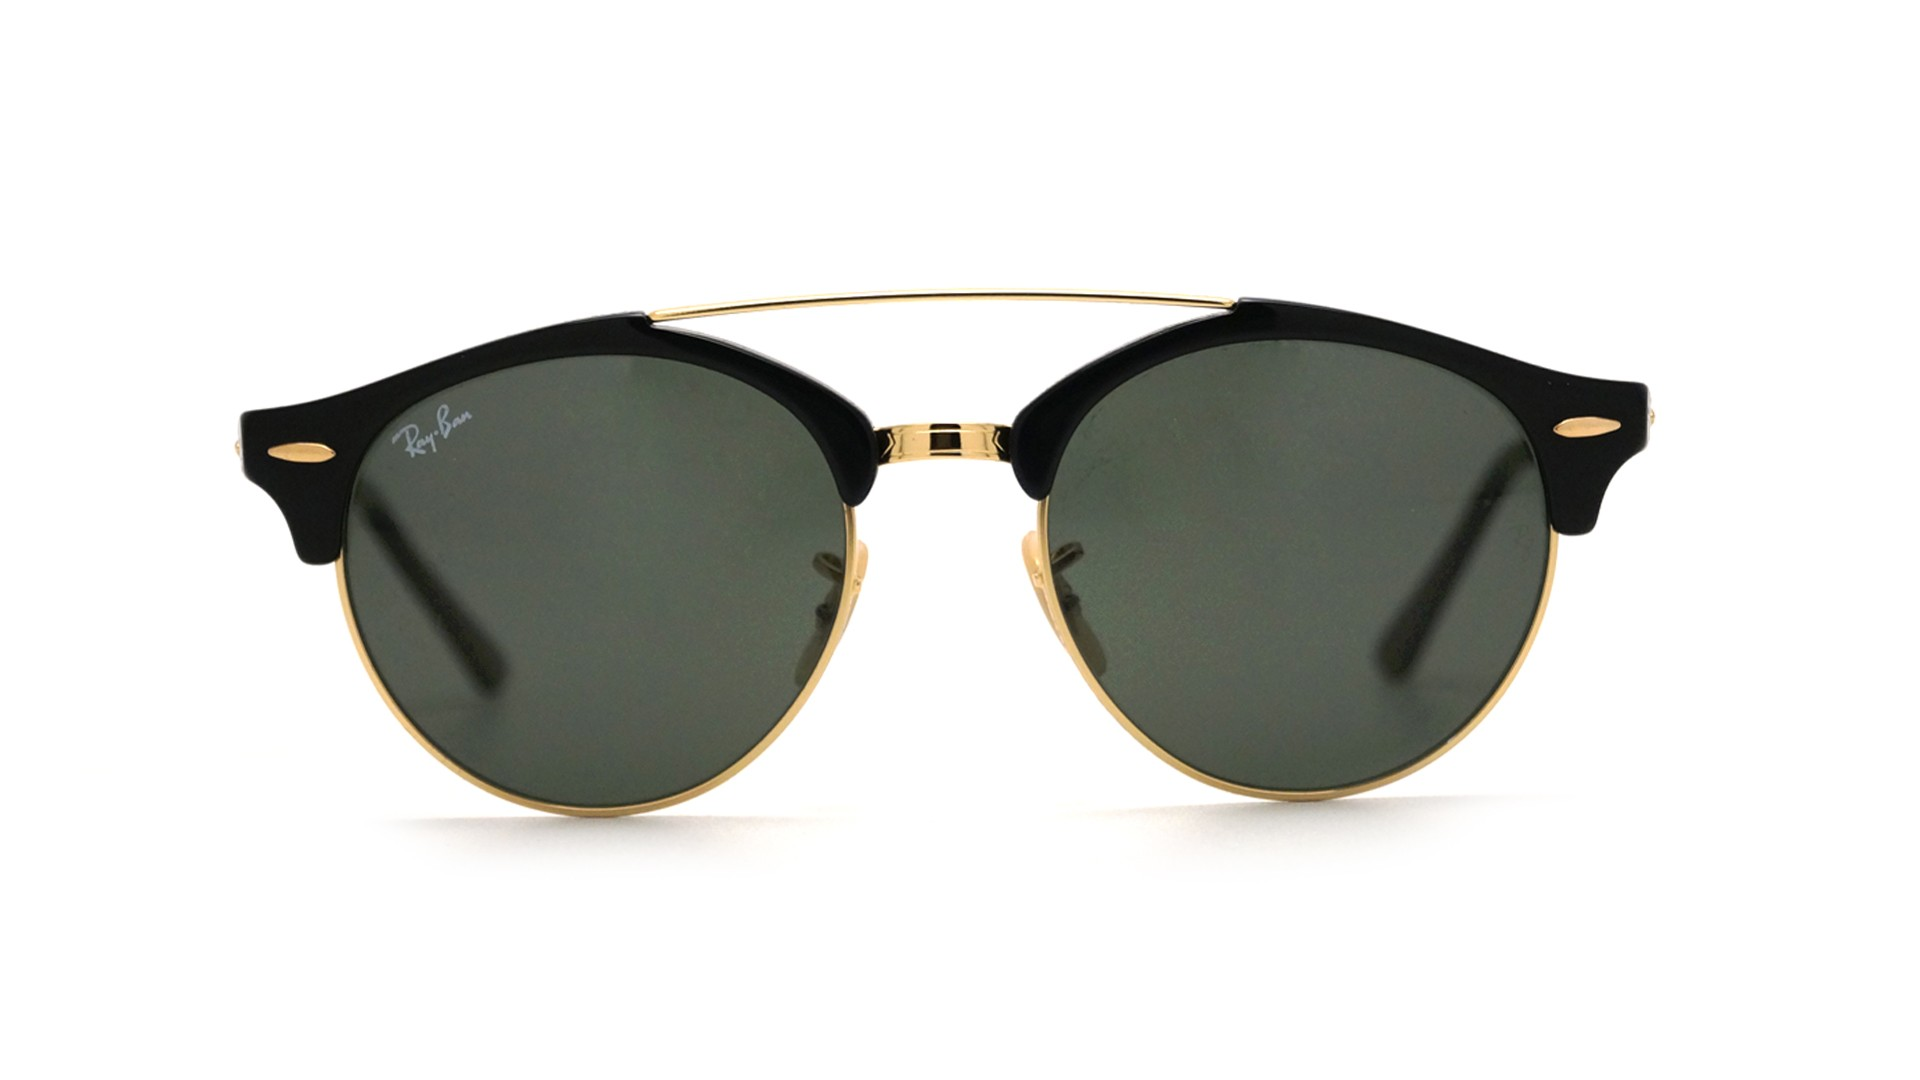 57e98c9daeb758 Sunglasses Ray-Ban Clubround double bridge Black RB4346 901 51-19 Medium